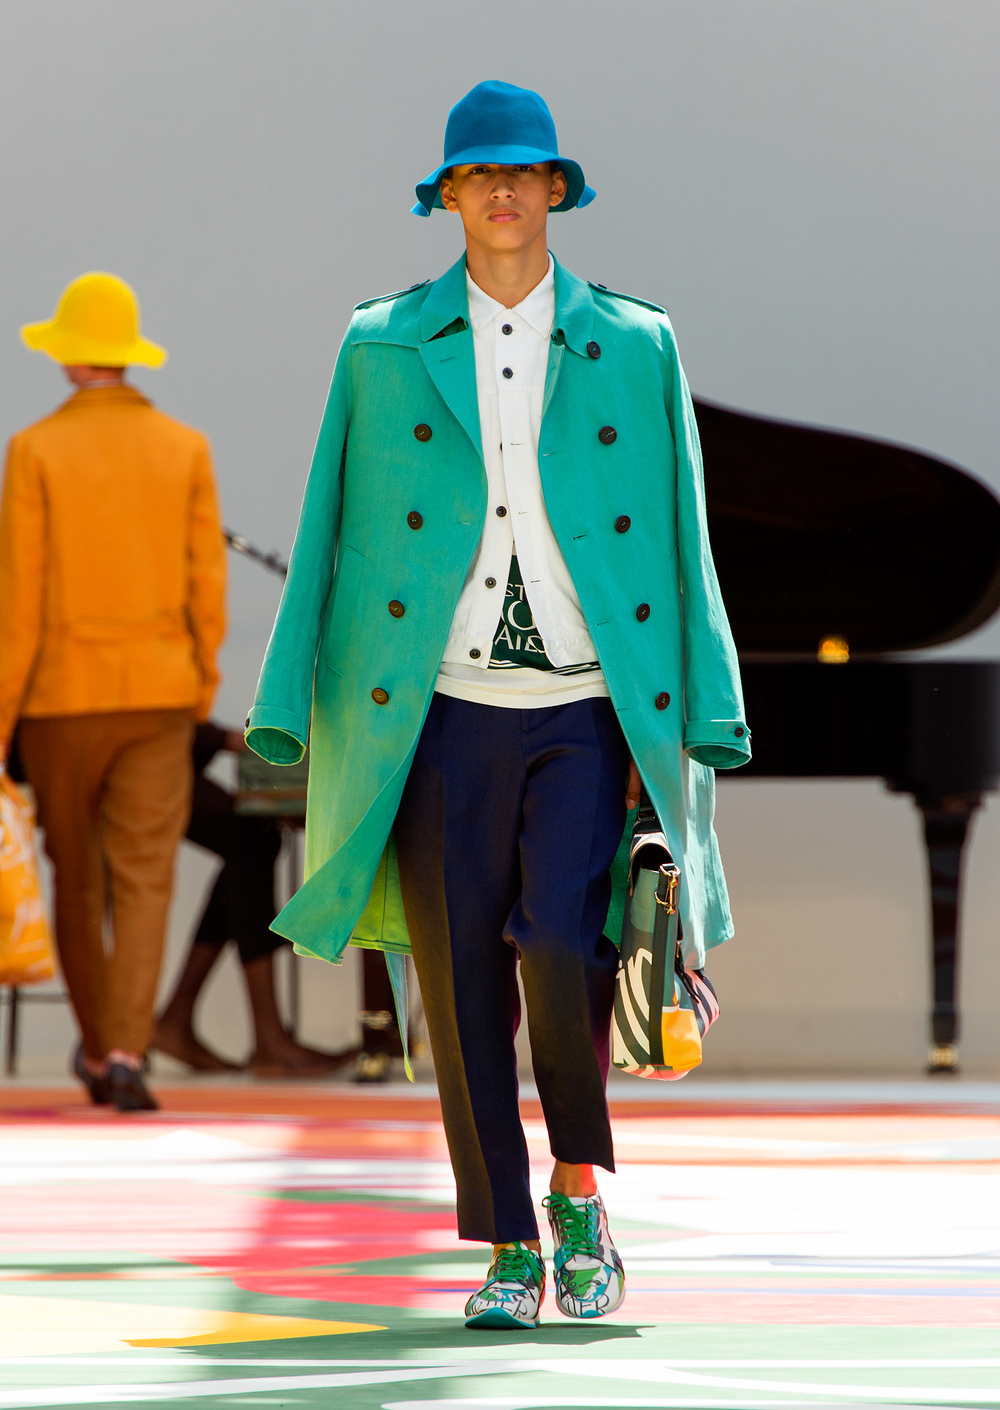 Burberry Prorsum Menswear Spring Summer 2015 Collection - Look 23.jpg